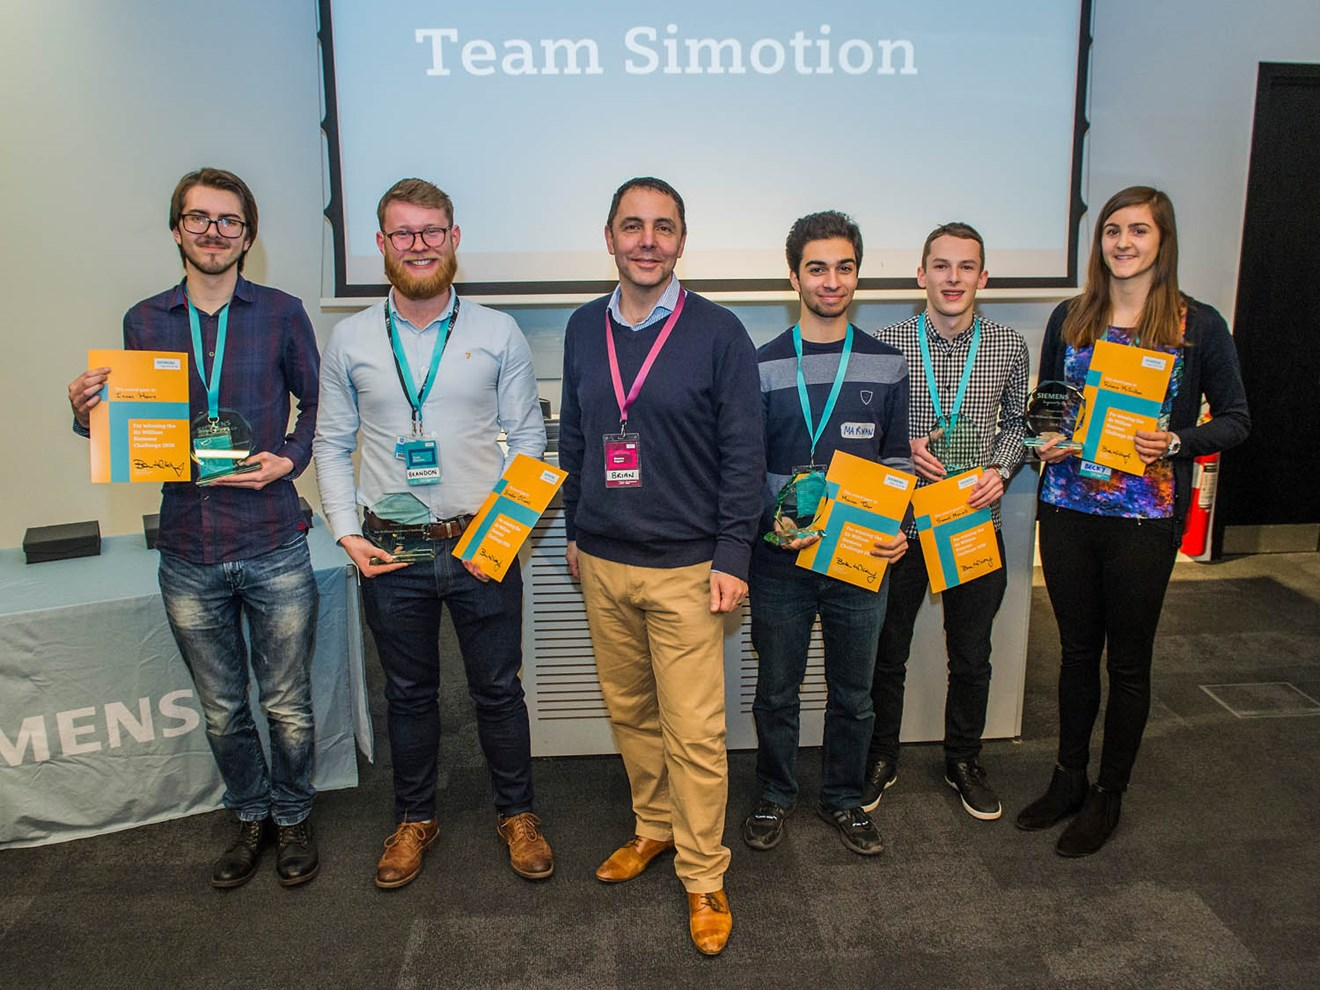 Top engineering students come together for innovative Siemens challenge: Top engineering students come together for innovative Siemens challenge